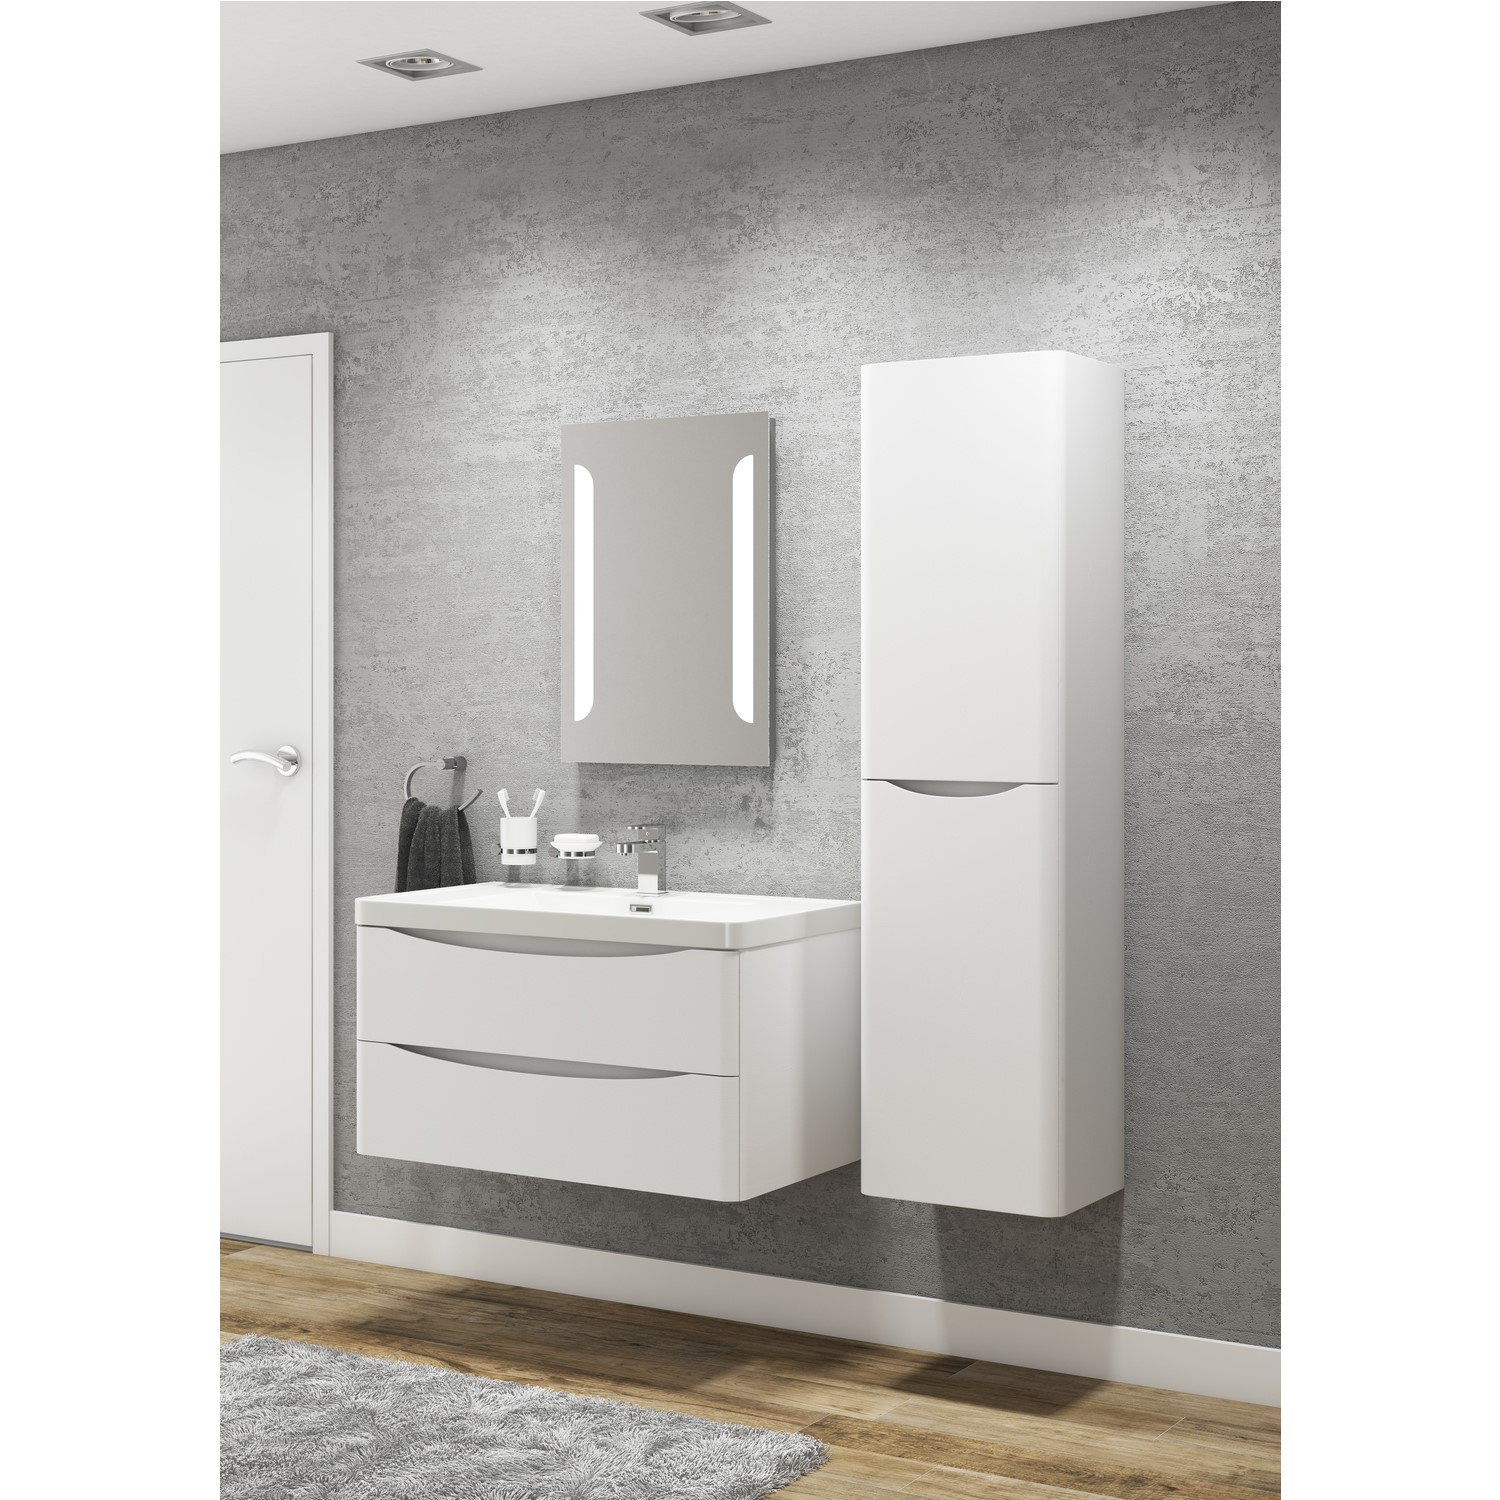 White Wall Hung Bathroom Vanity Unit Basin 600mm Wide